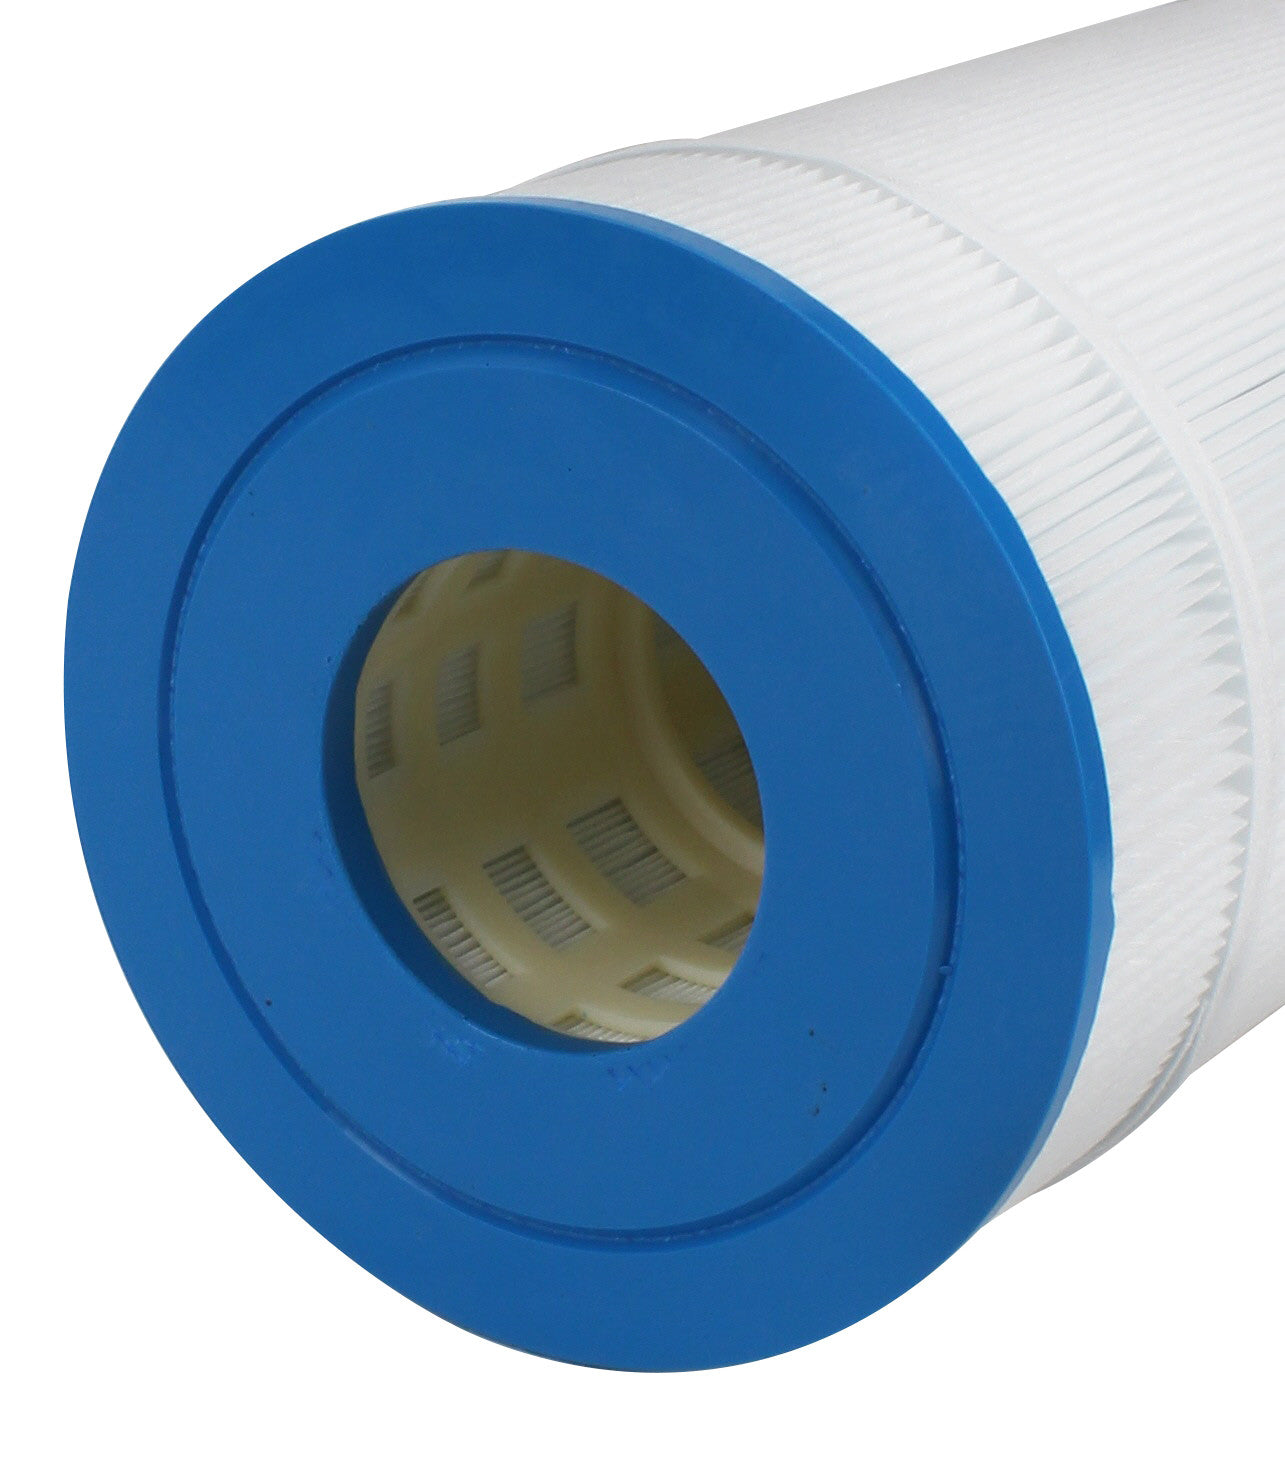 Replaces Unicel C-7495, Pleatco PA126 • Swimming Pool Filter Cartridge-Filter Cartridge-FilterDeal.com